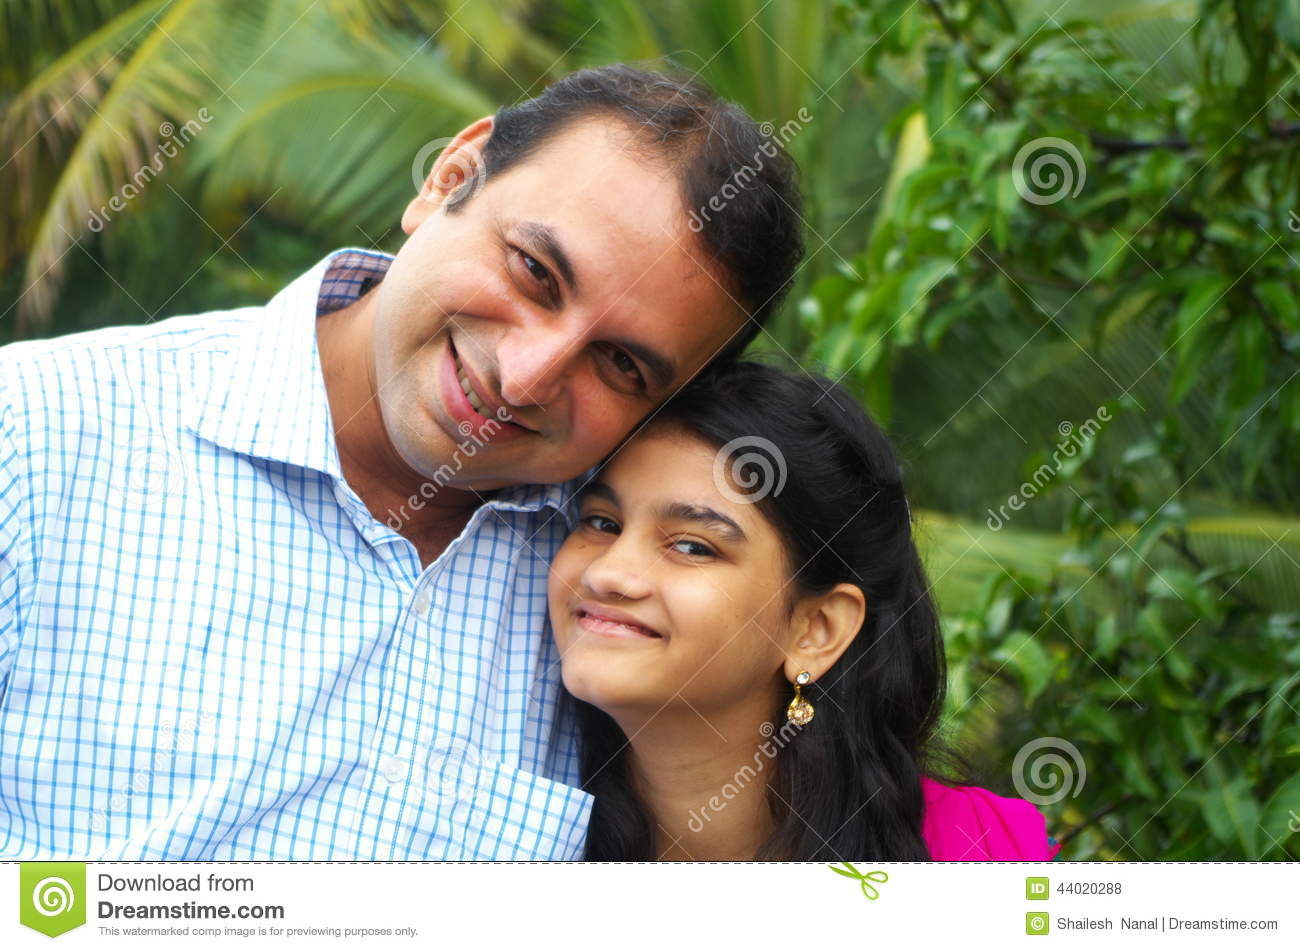 uncle and niece intimate relationship